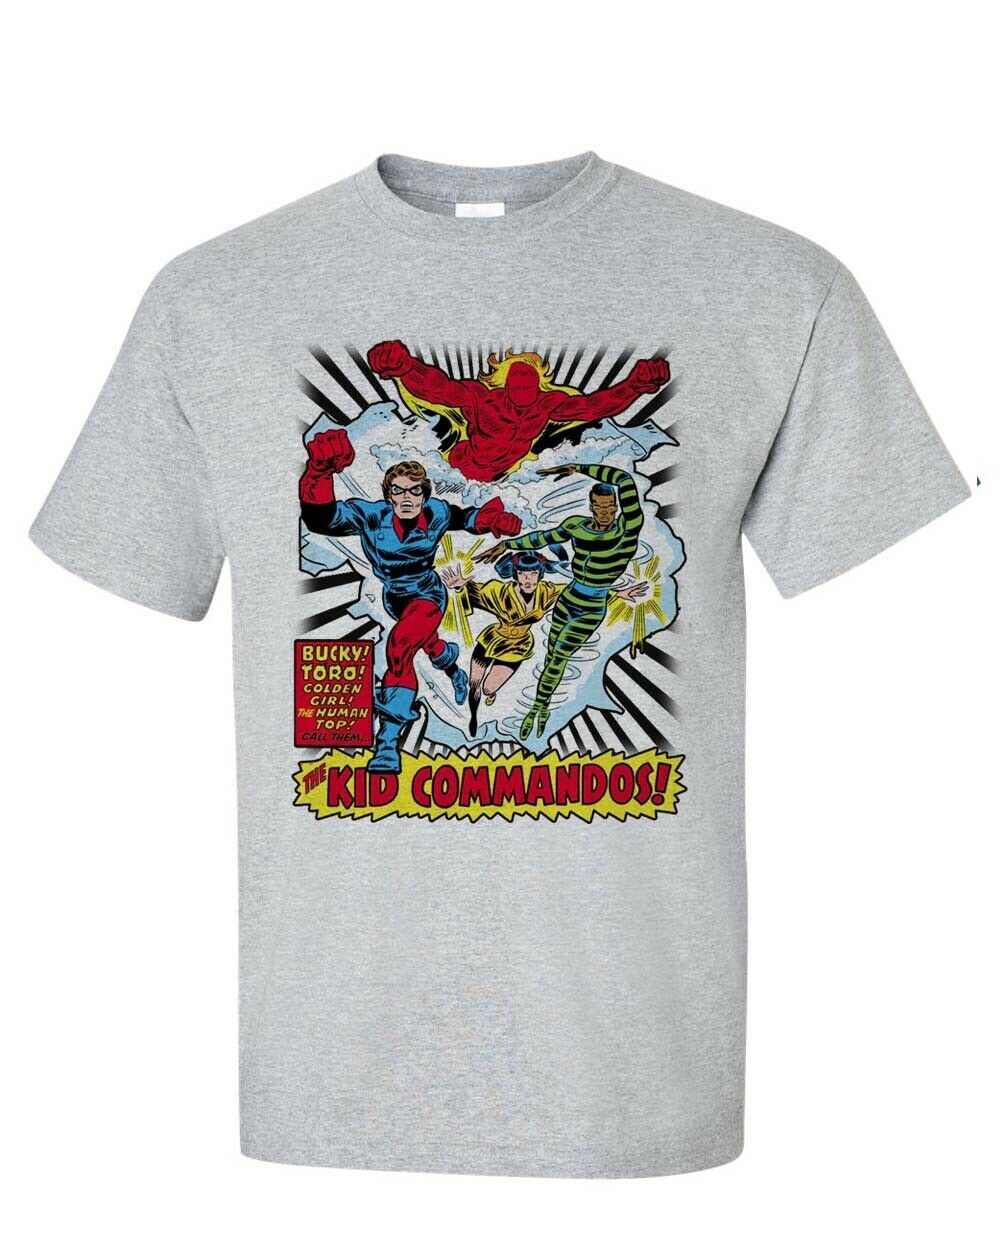 The Invaders Kid Commandos T-shirt vintage 1970's marvel comics silver age tee